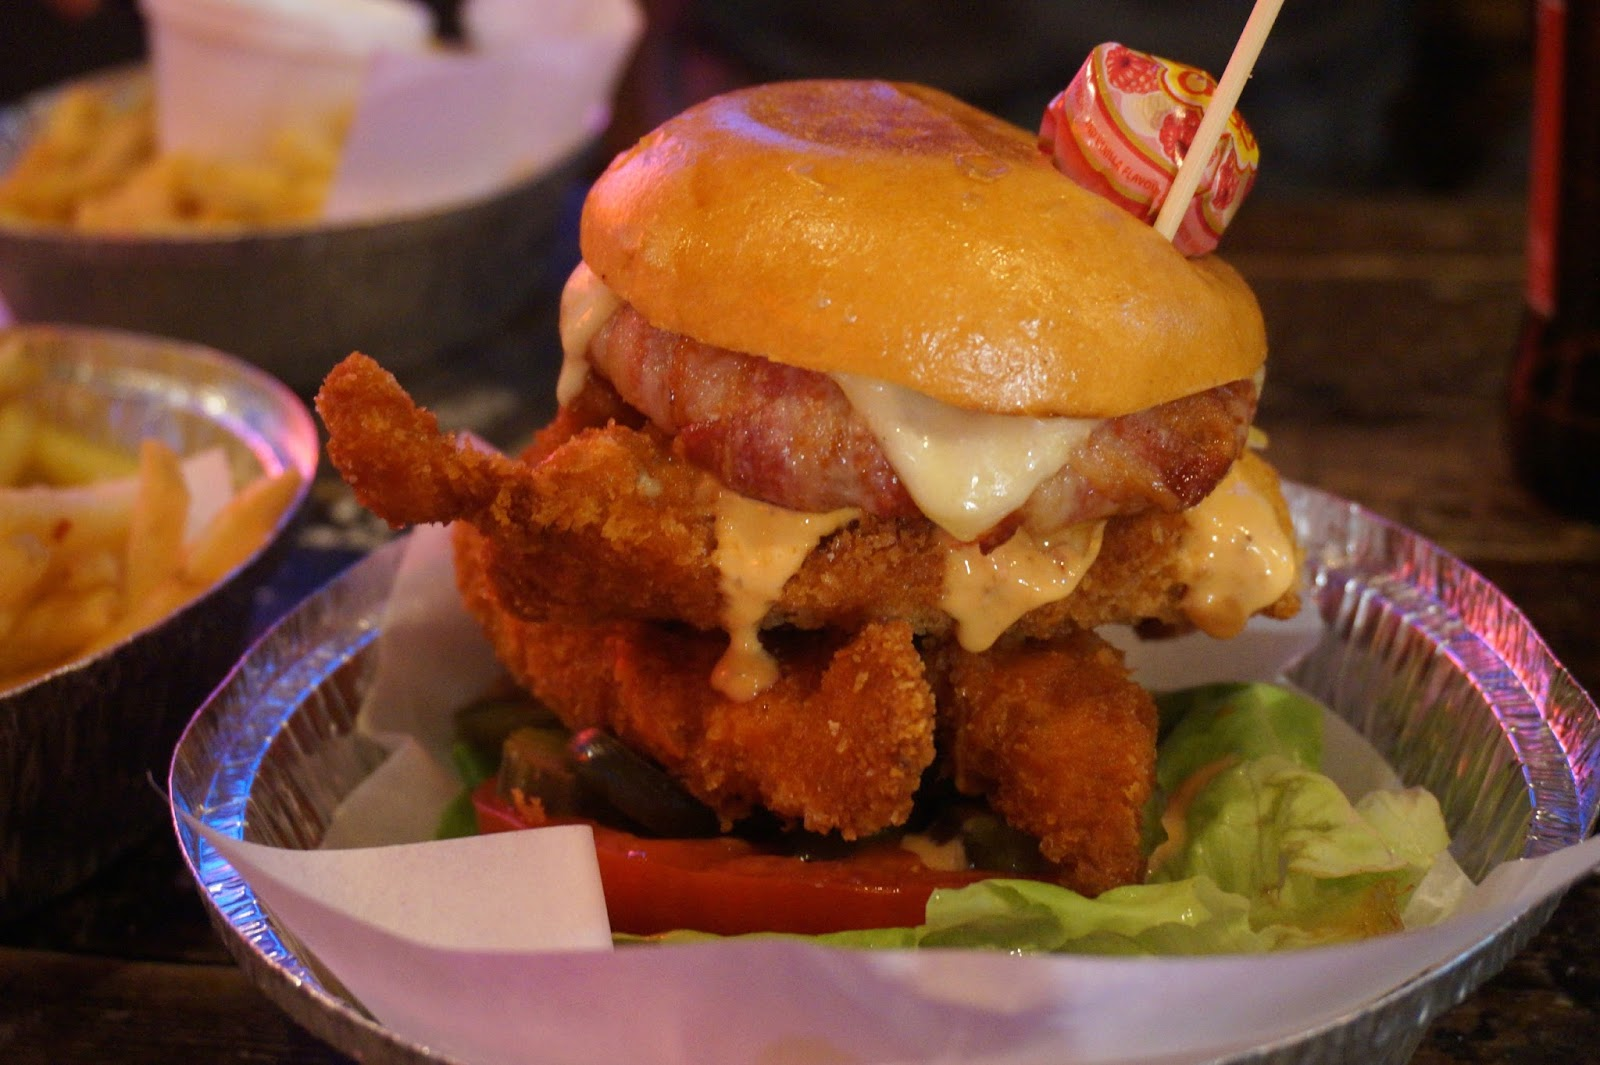 double chicken burger with bacon, swiss cheese, an onion ring and salad